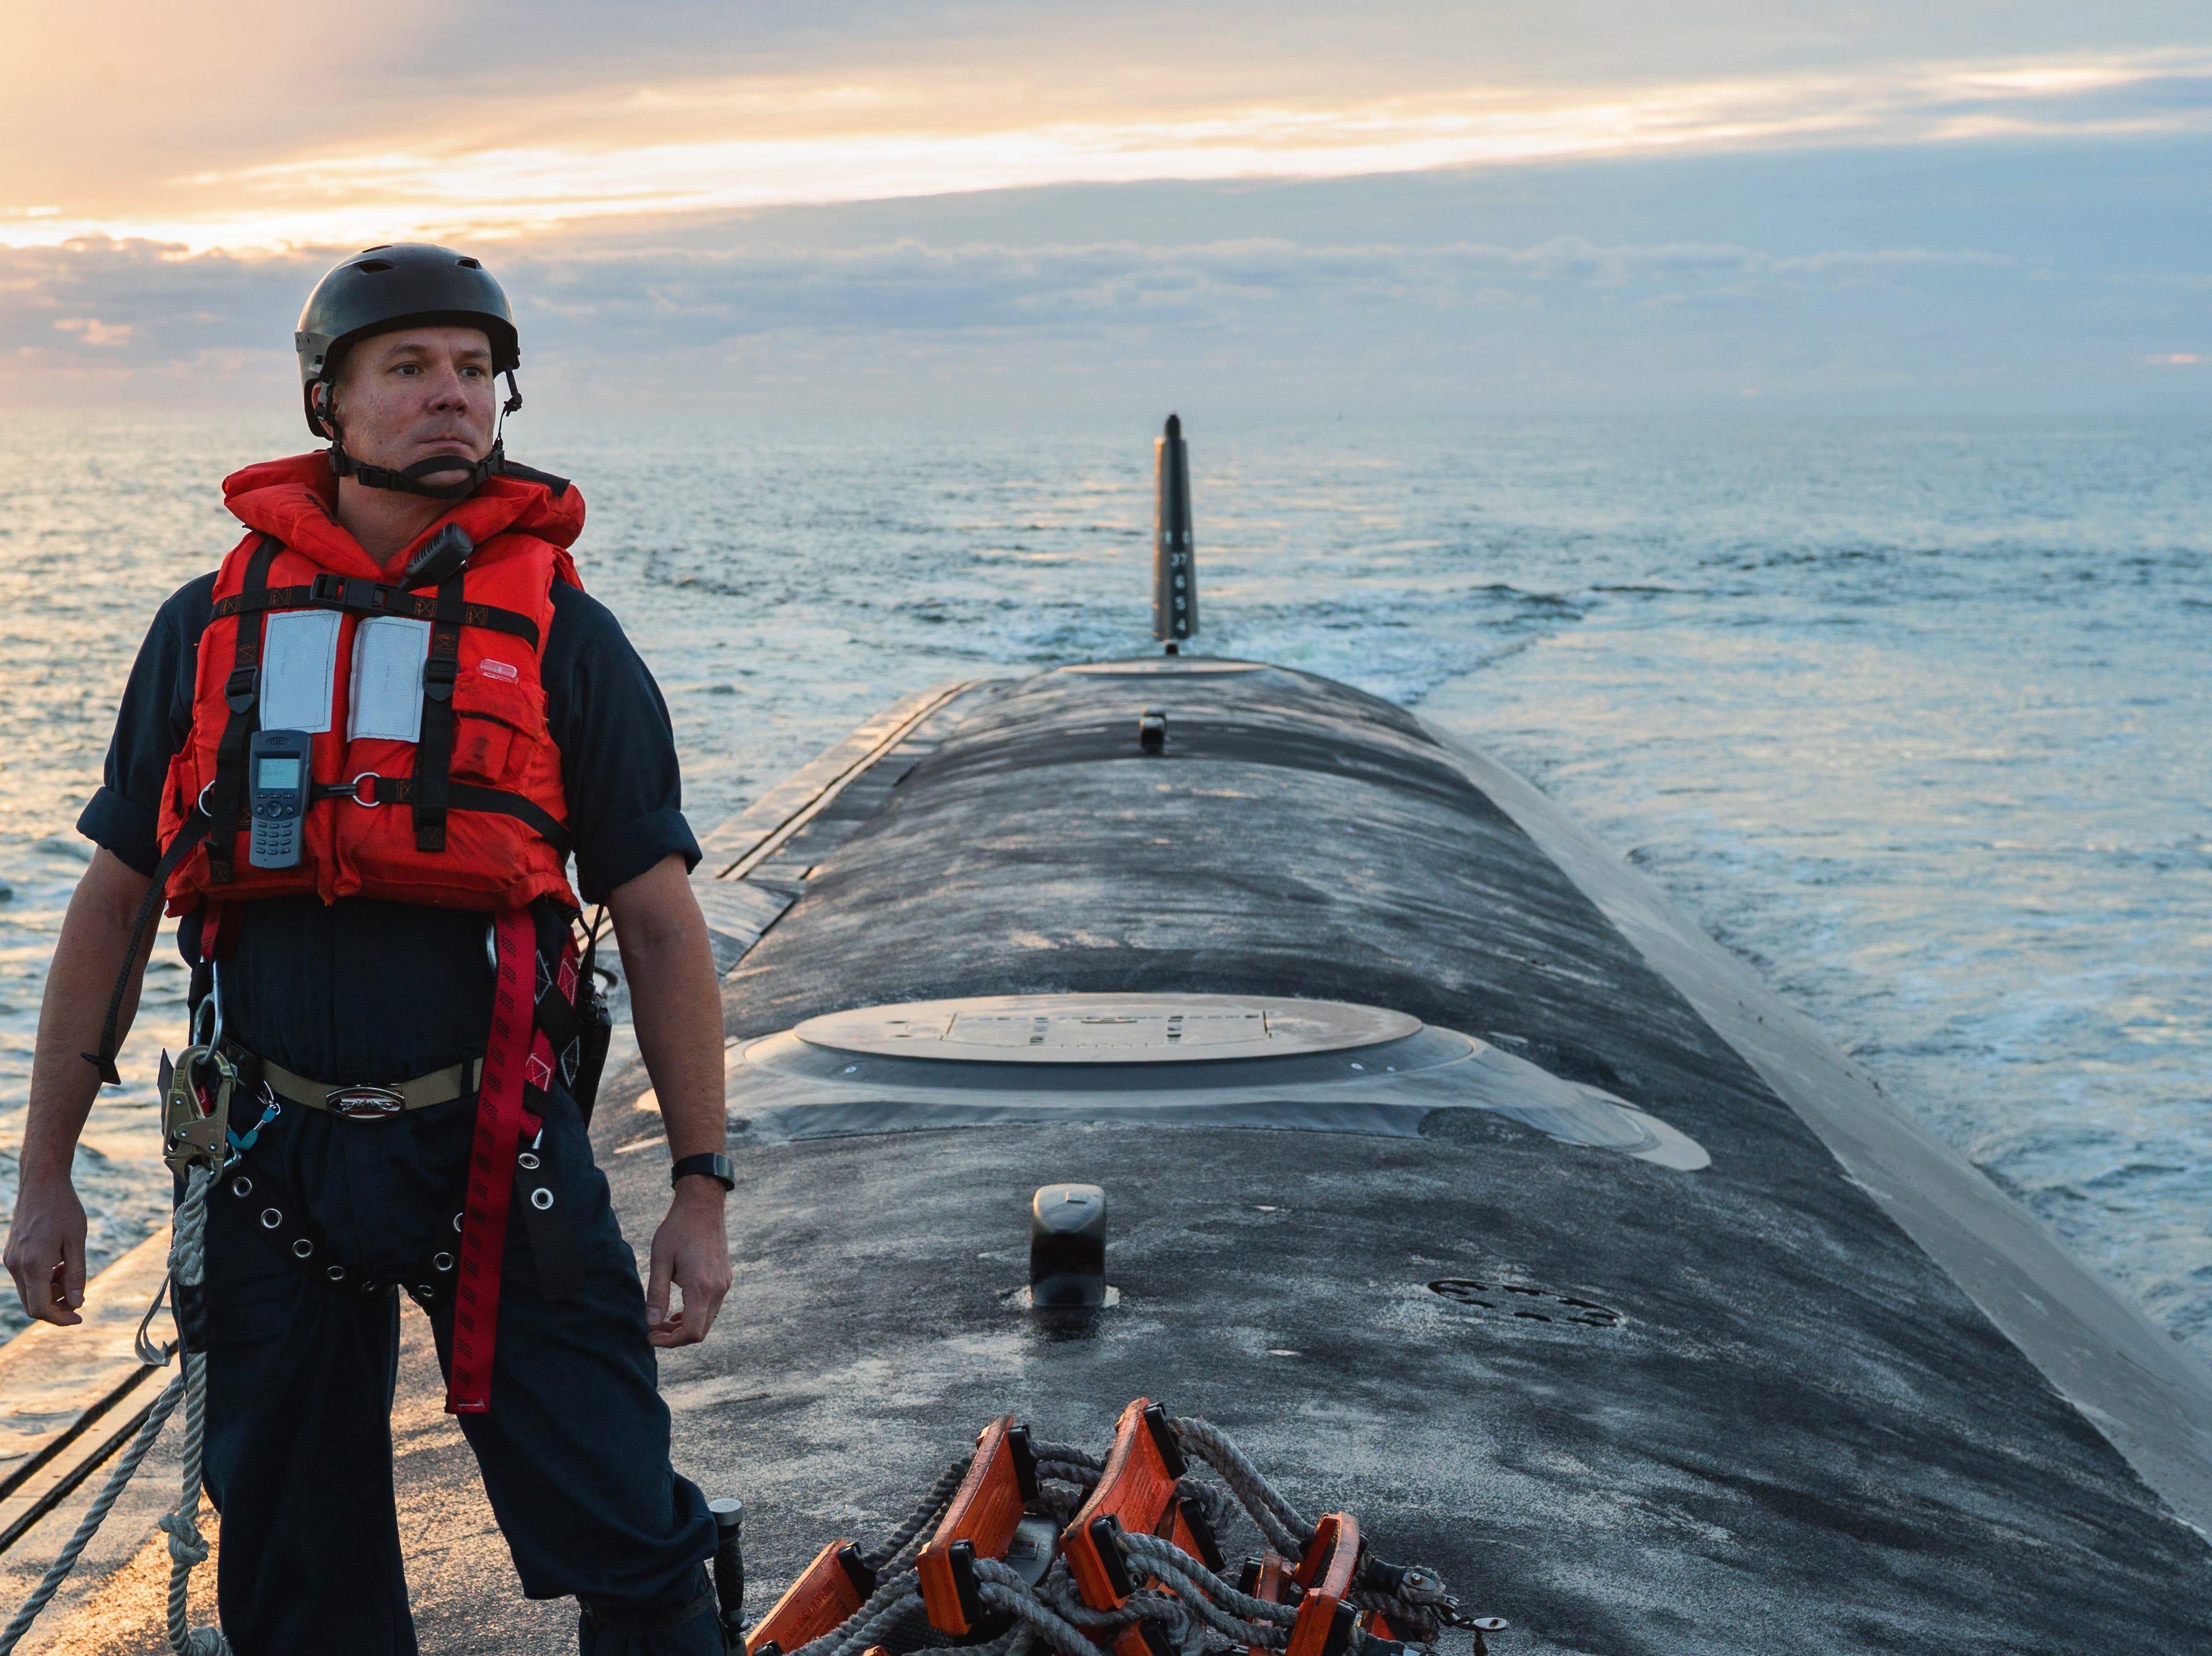 A U.S. Navy Chief Petty Officer of the Boat, a pre-commissioned Unit (PCU) South Dakota submariner, stands and watches as the submarine arrives into Port Canaveral during an underway somewhere in the Atlantic Ocean Nov. 27.